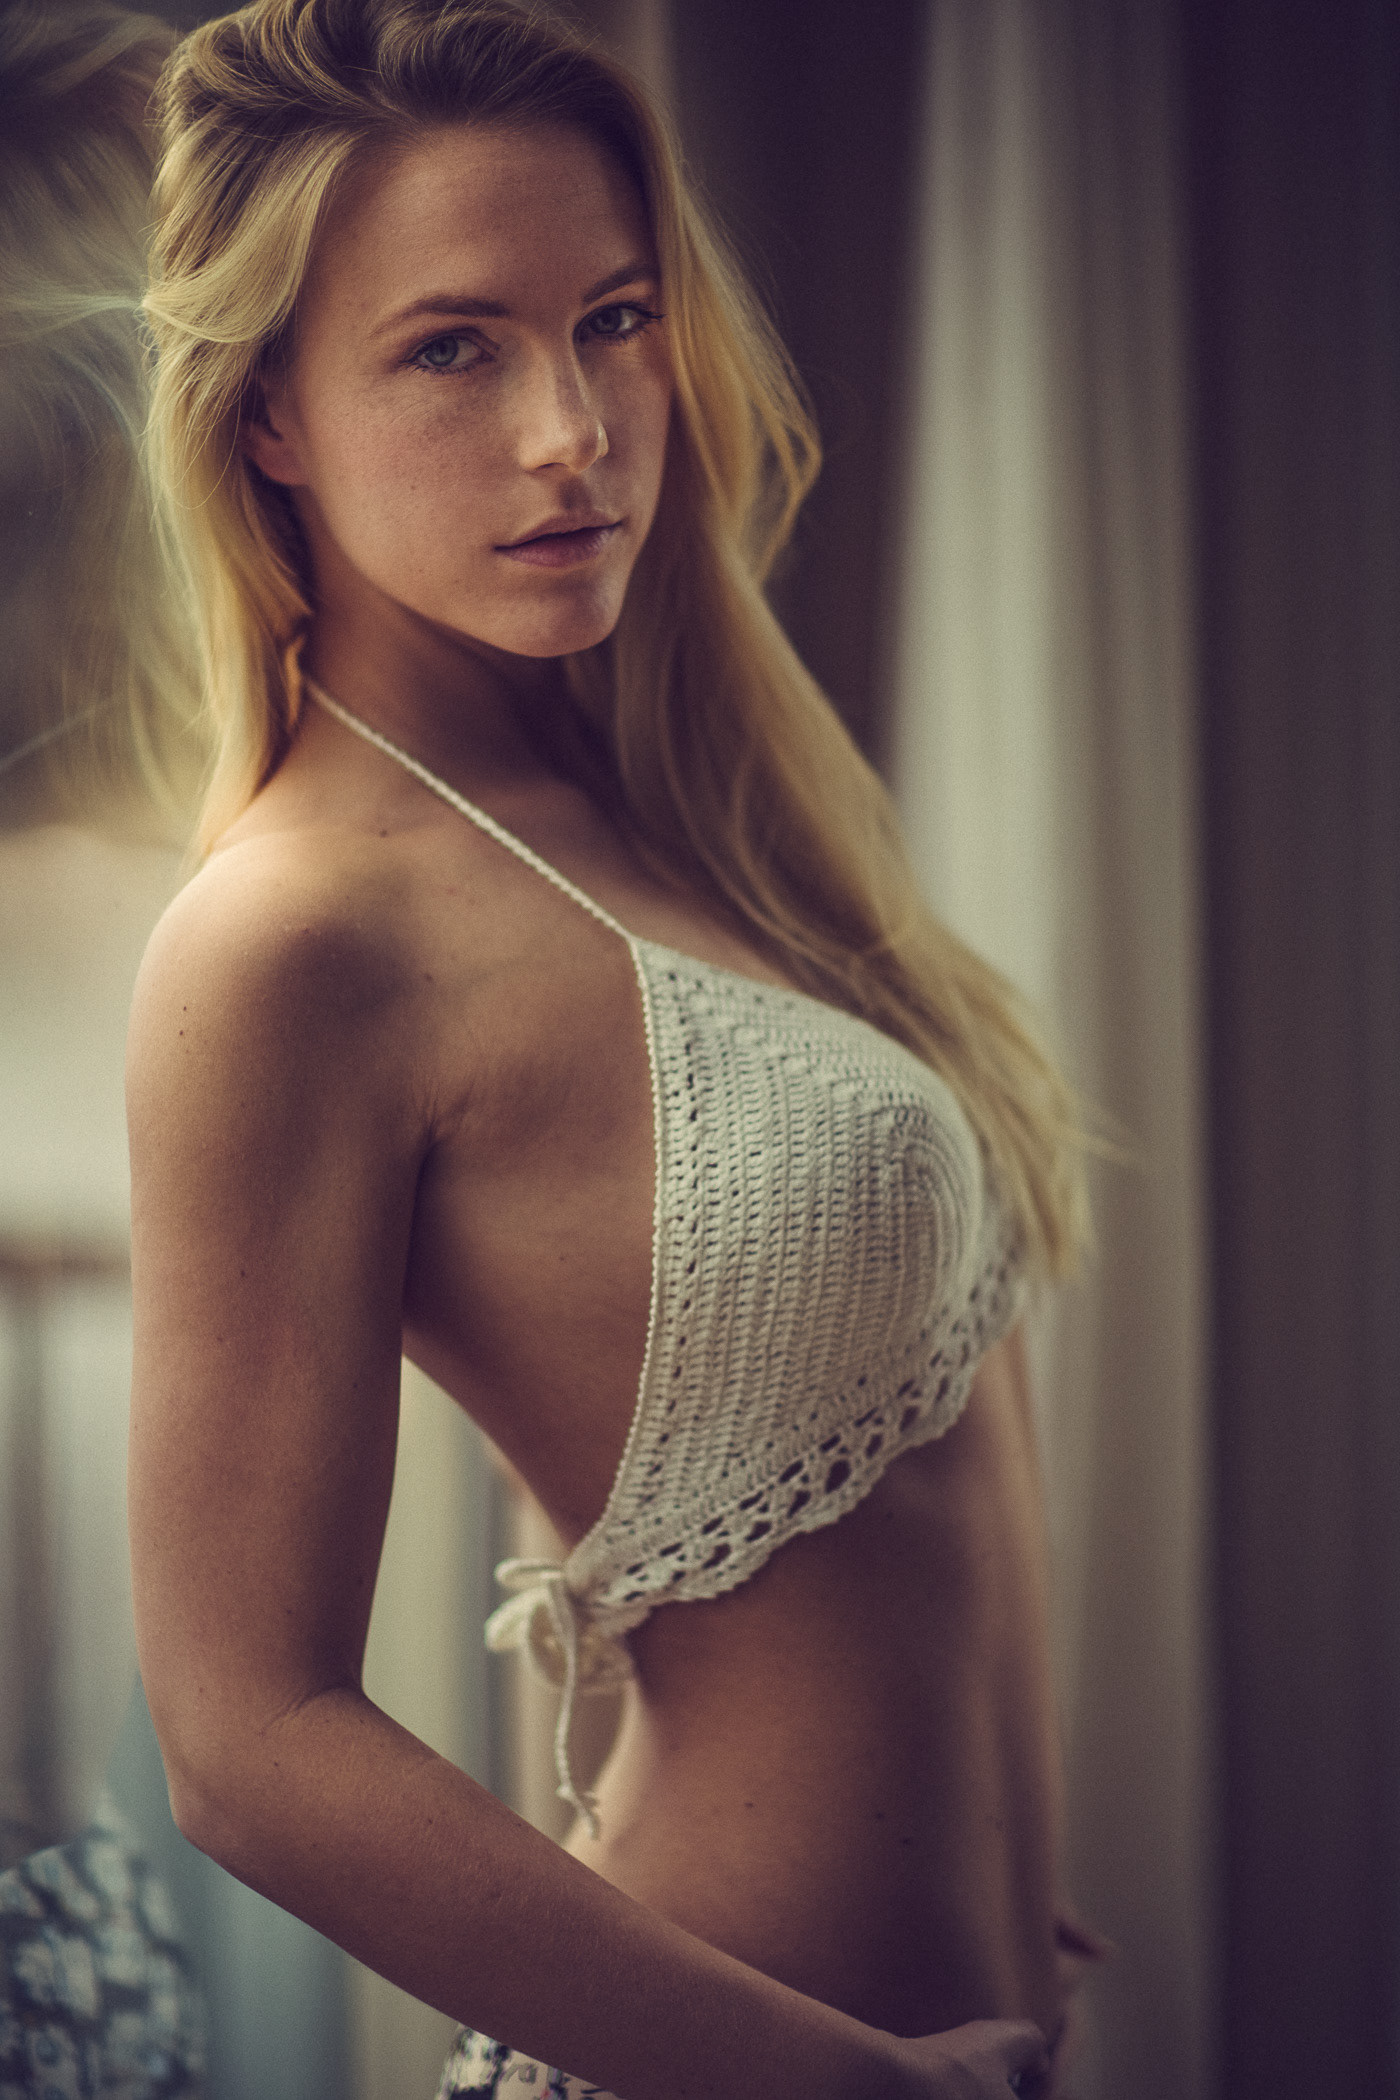 Sheena by Thomas Agatz